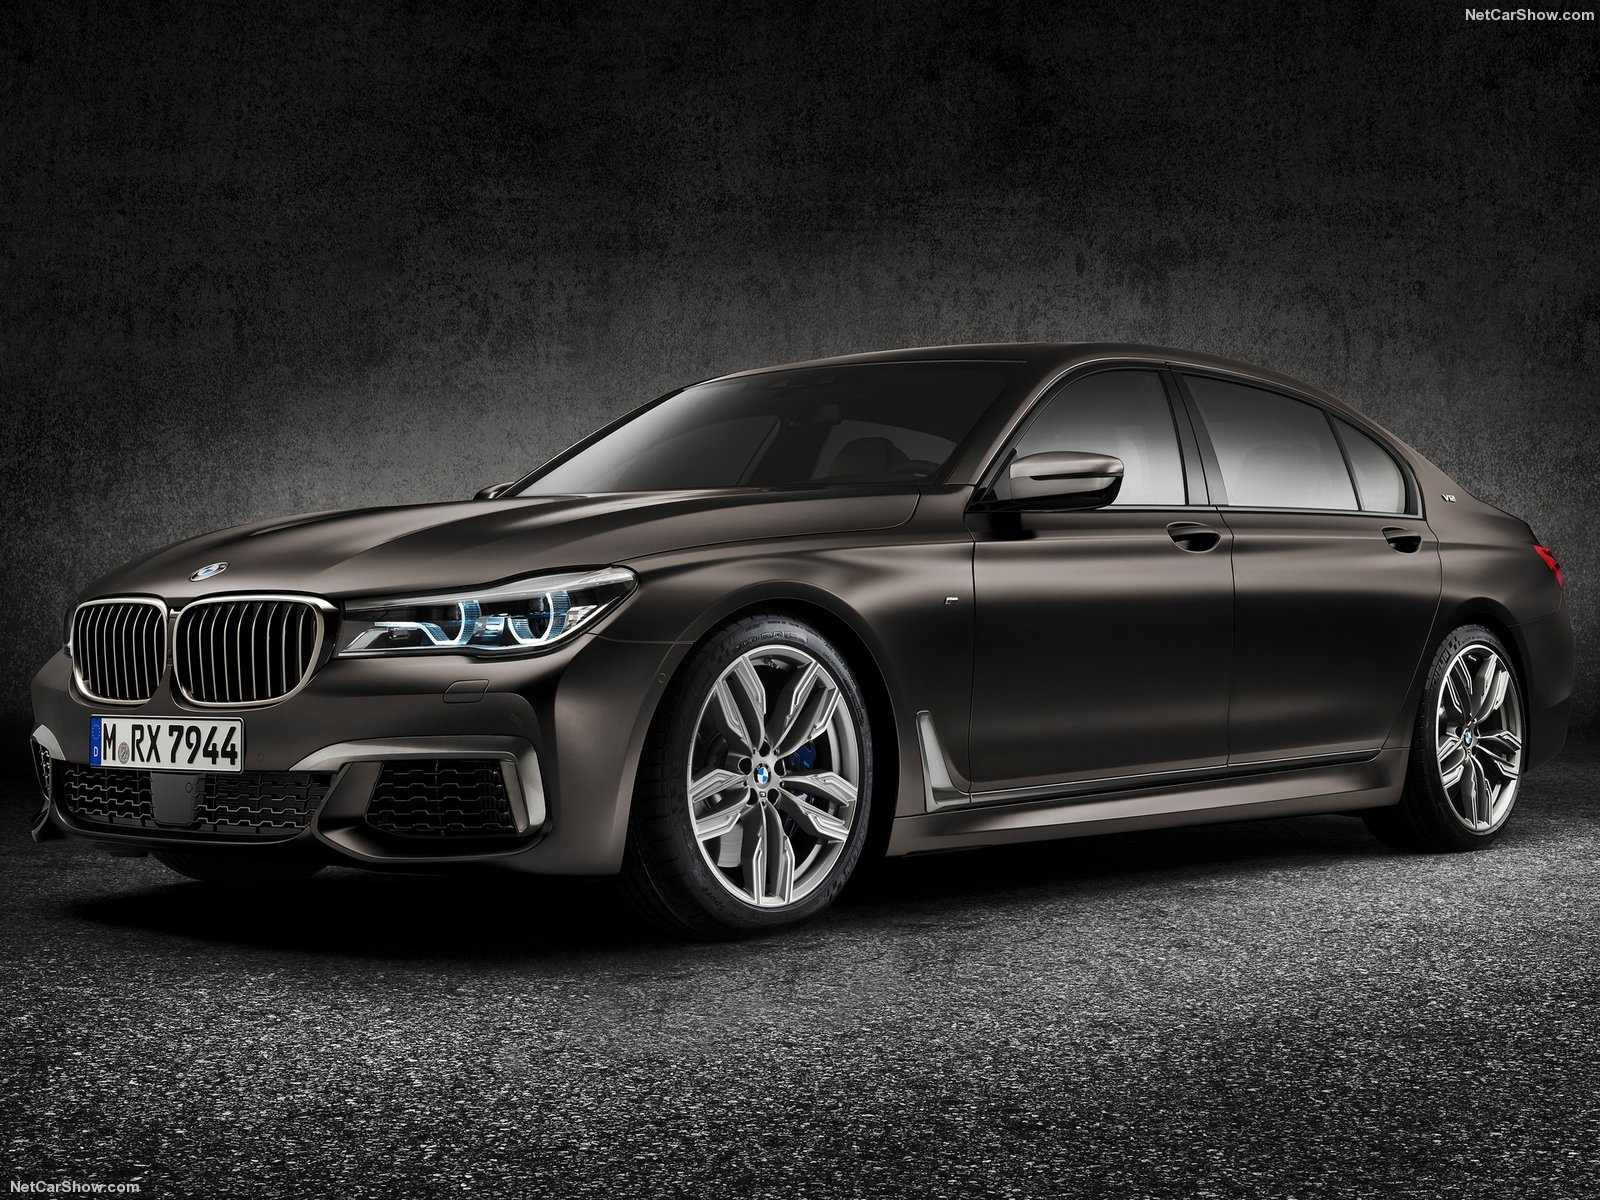 BMW-M760Li_xDrive_2017_1600x1200_wallpaper_06